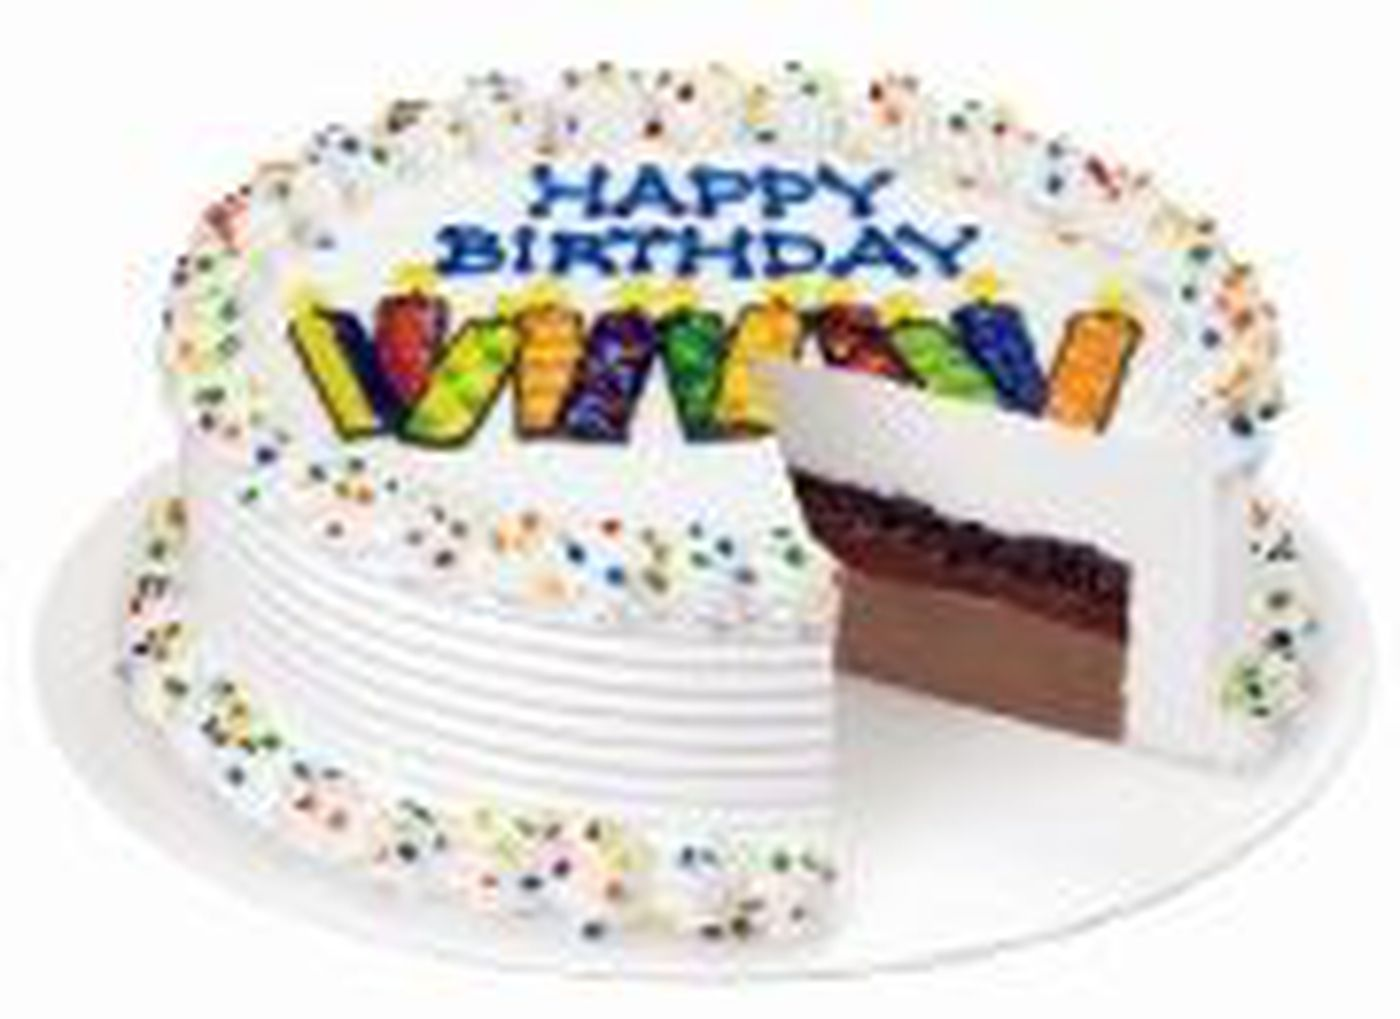 Astounding Win A Dairy Queen Cake And Eat It Too Funny Birthday Cards Online Alyptdamsfinfo